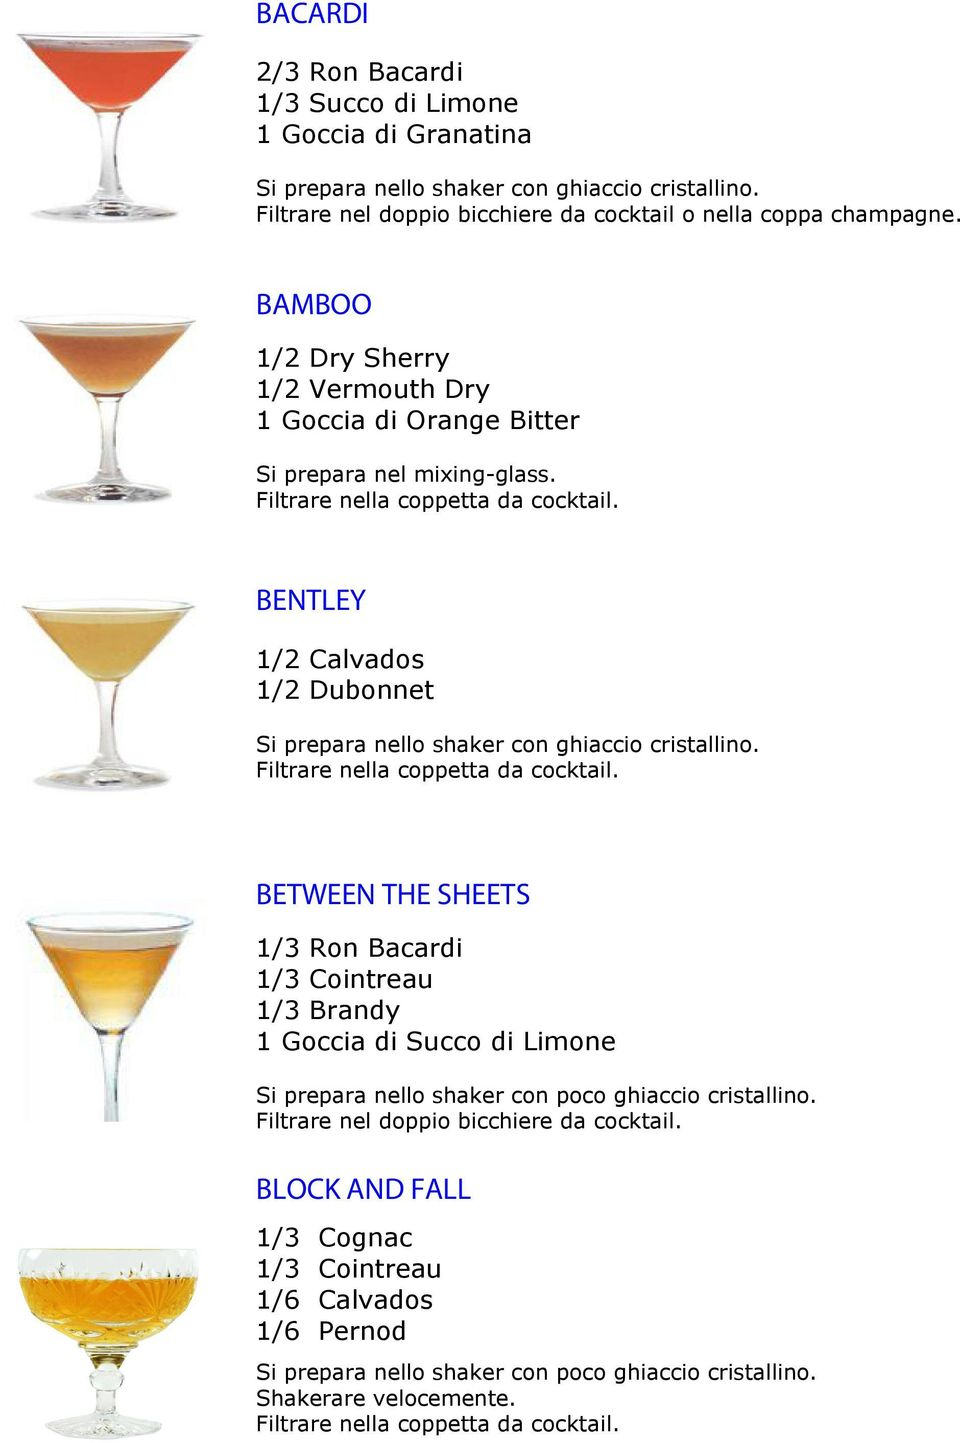 BAMBOO 1/2 Dry Sherry 1/2 Vermouth Dry 1 Goccia di Orange Bitter BENTLEY 1/2 Calvados 1/2 Dubonnet BETWEEN THE